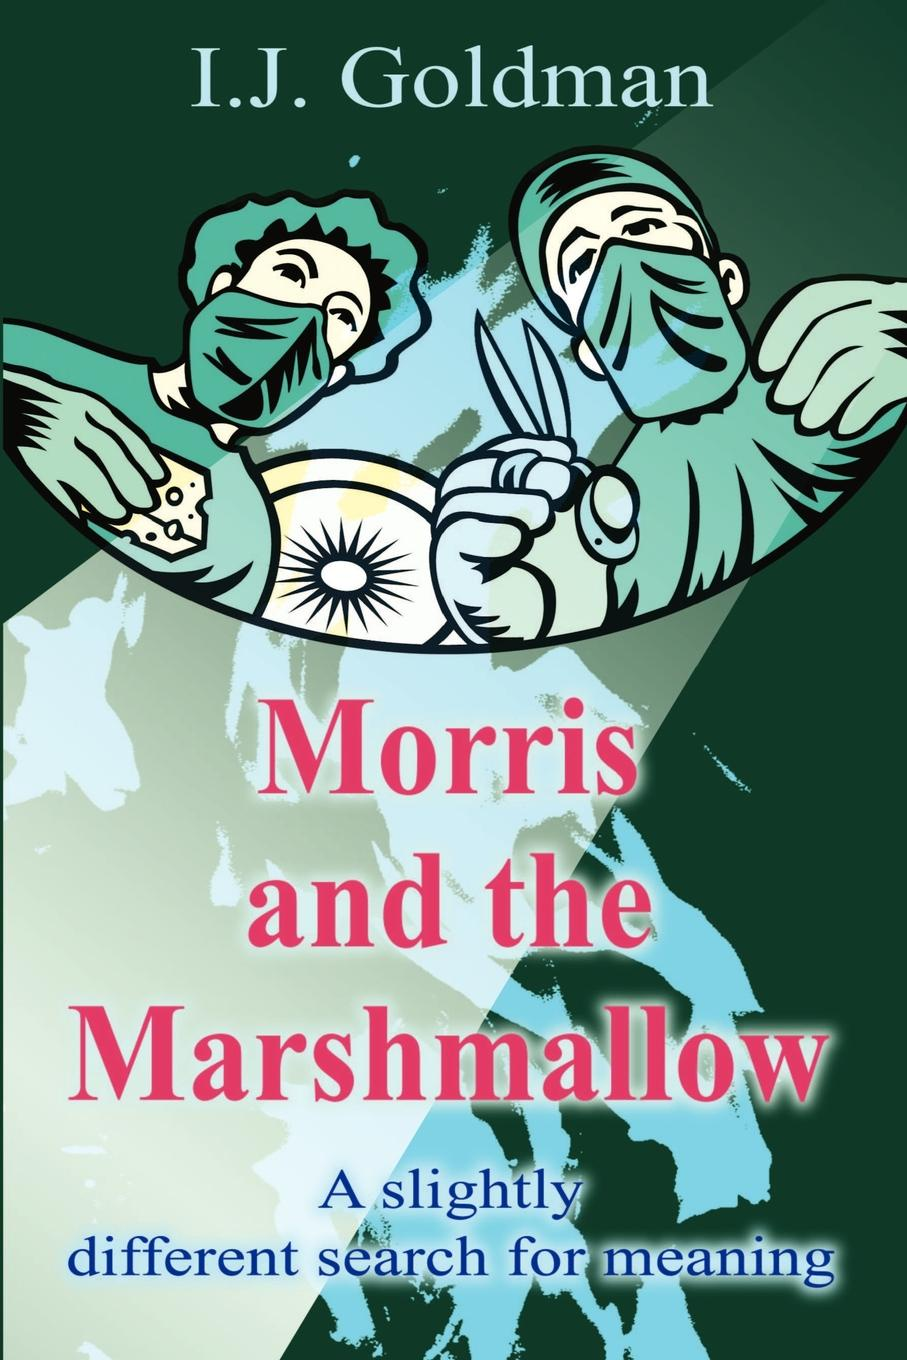 Irwin Goldman Morris and the Marshmallow. A Slightly Different Search for Meaning